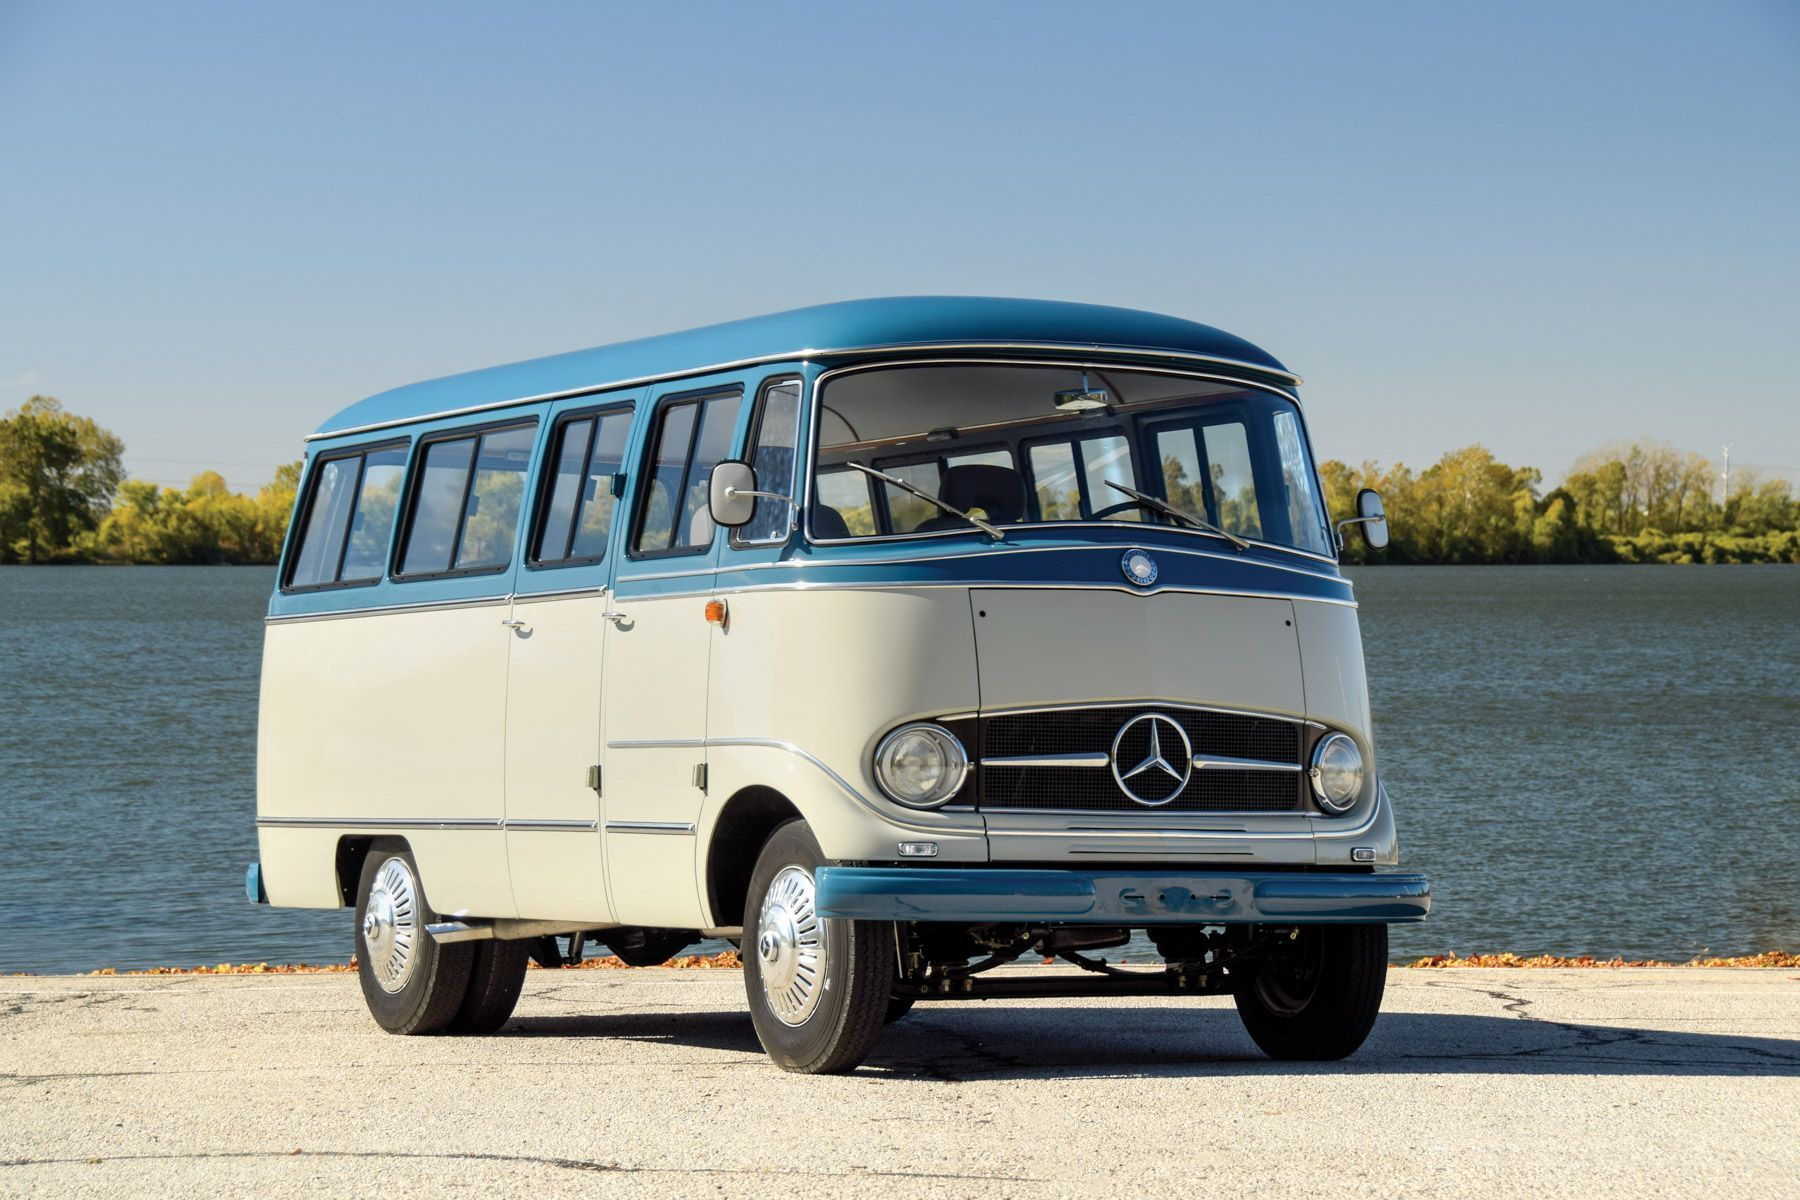 Mercedes Benz O 319 Bus Was The Company S Idea Of Groovy 60s